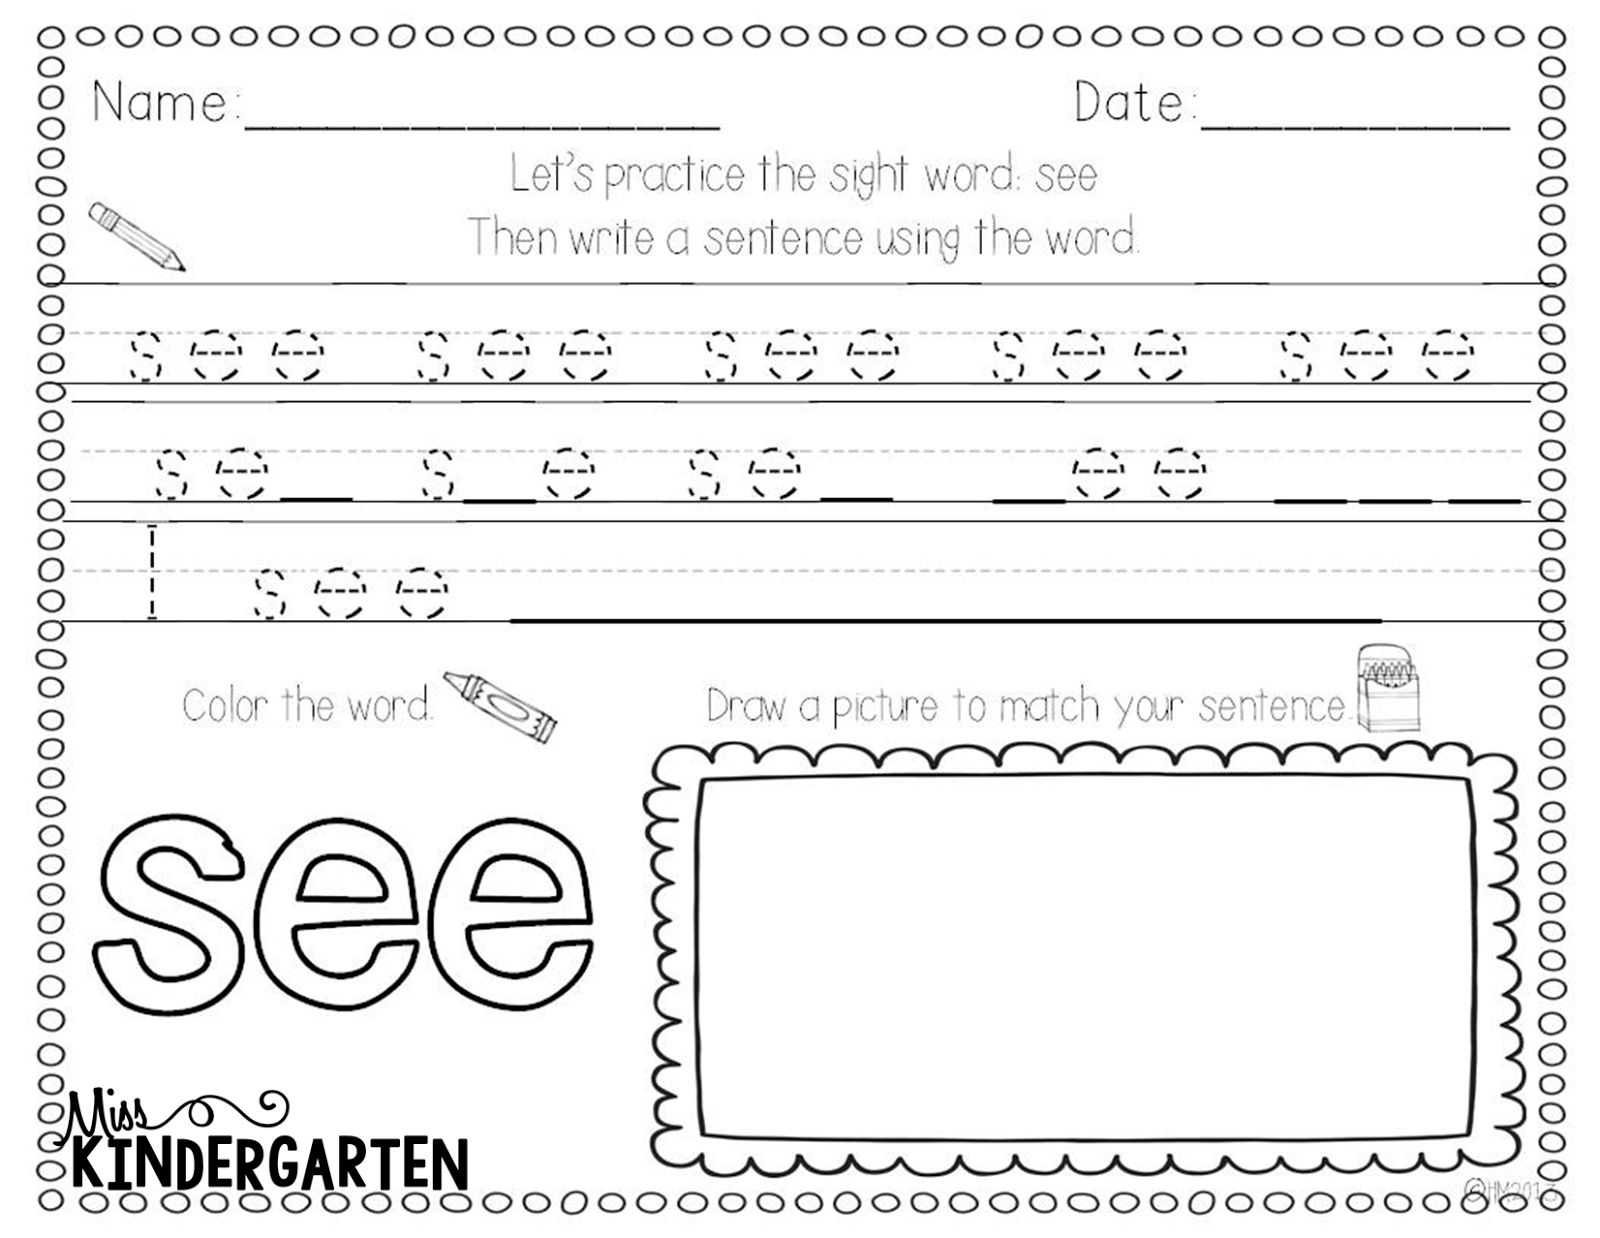 Worksheet Sentences Using Sight Words sight word practice miss kindergarten httpwww teacherspayteachers comproductsight word